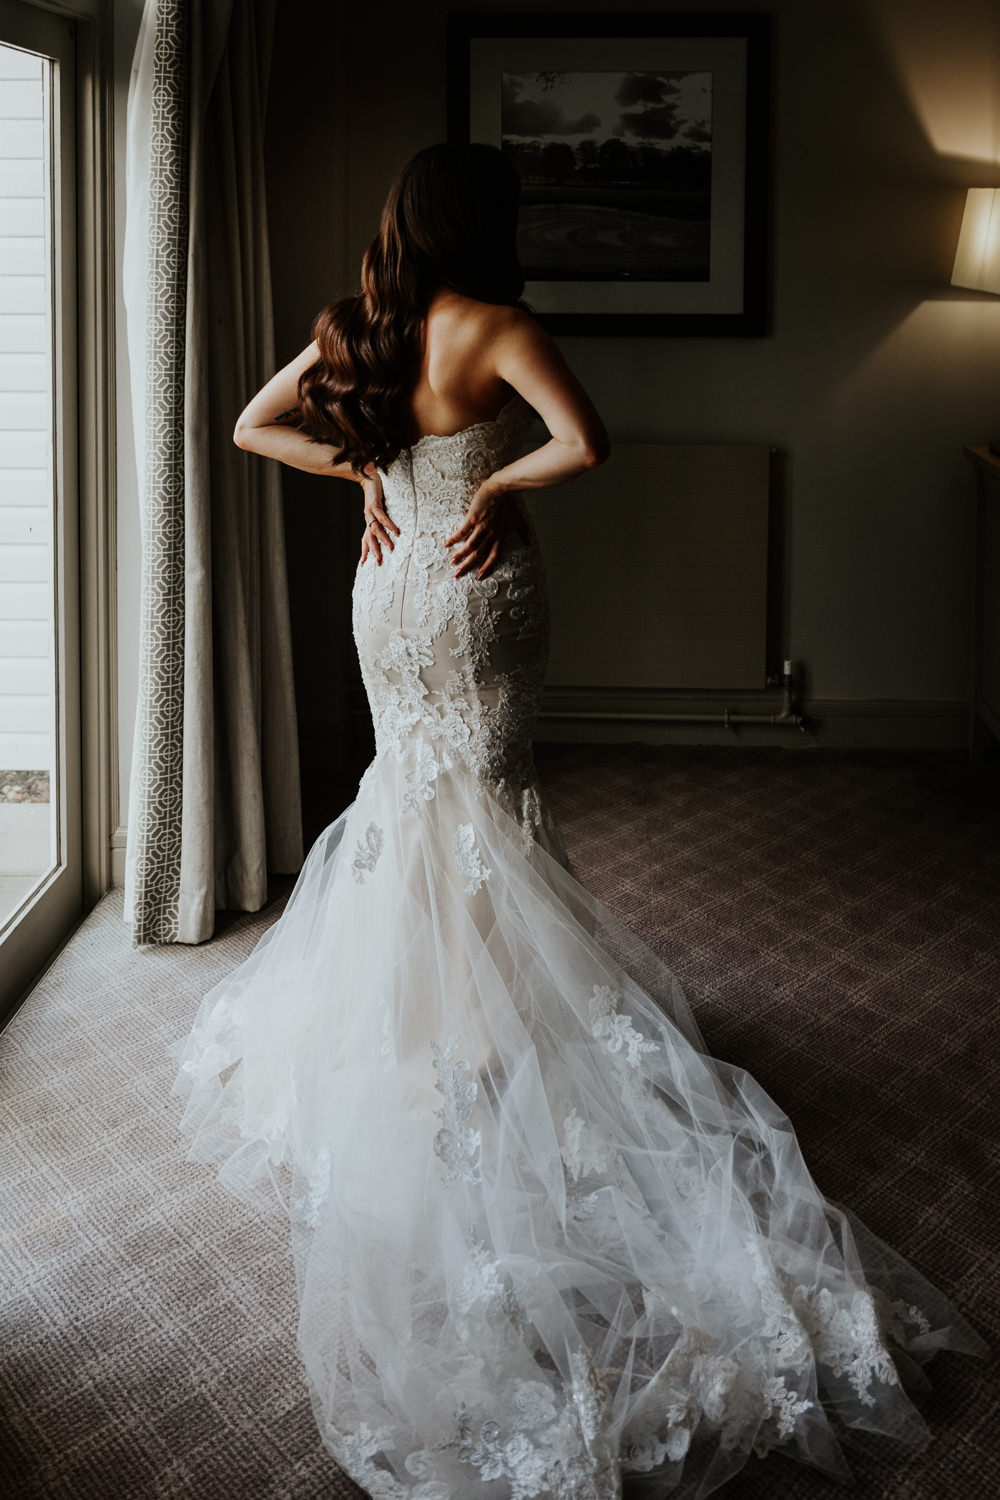 Dress Gown Bride Bridal Enzoani Lace Fit and Flare Shustoke Barn Wedding Oxi Photography